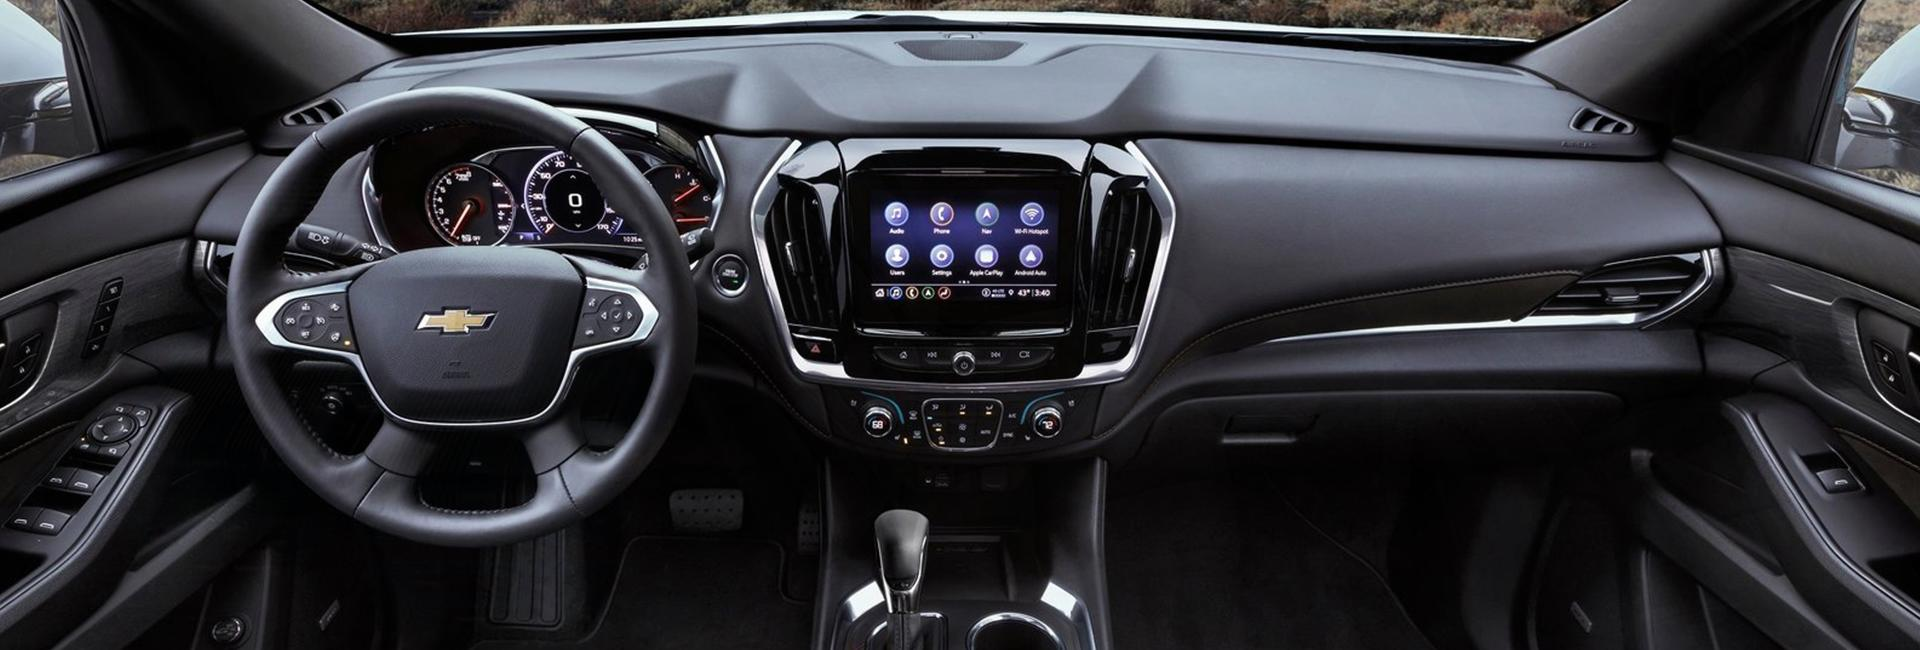 Close up view of a Chevy Traverse's steering wheel and dashboard